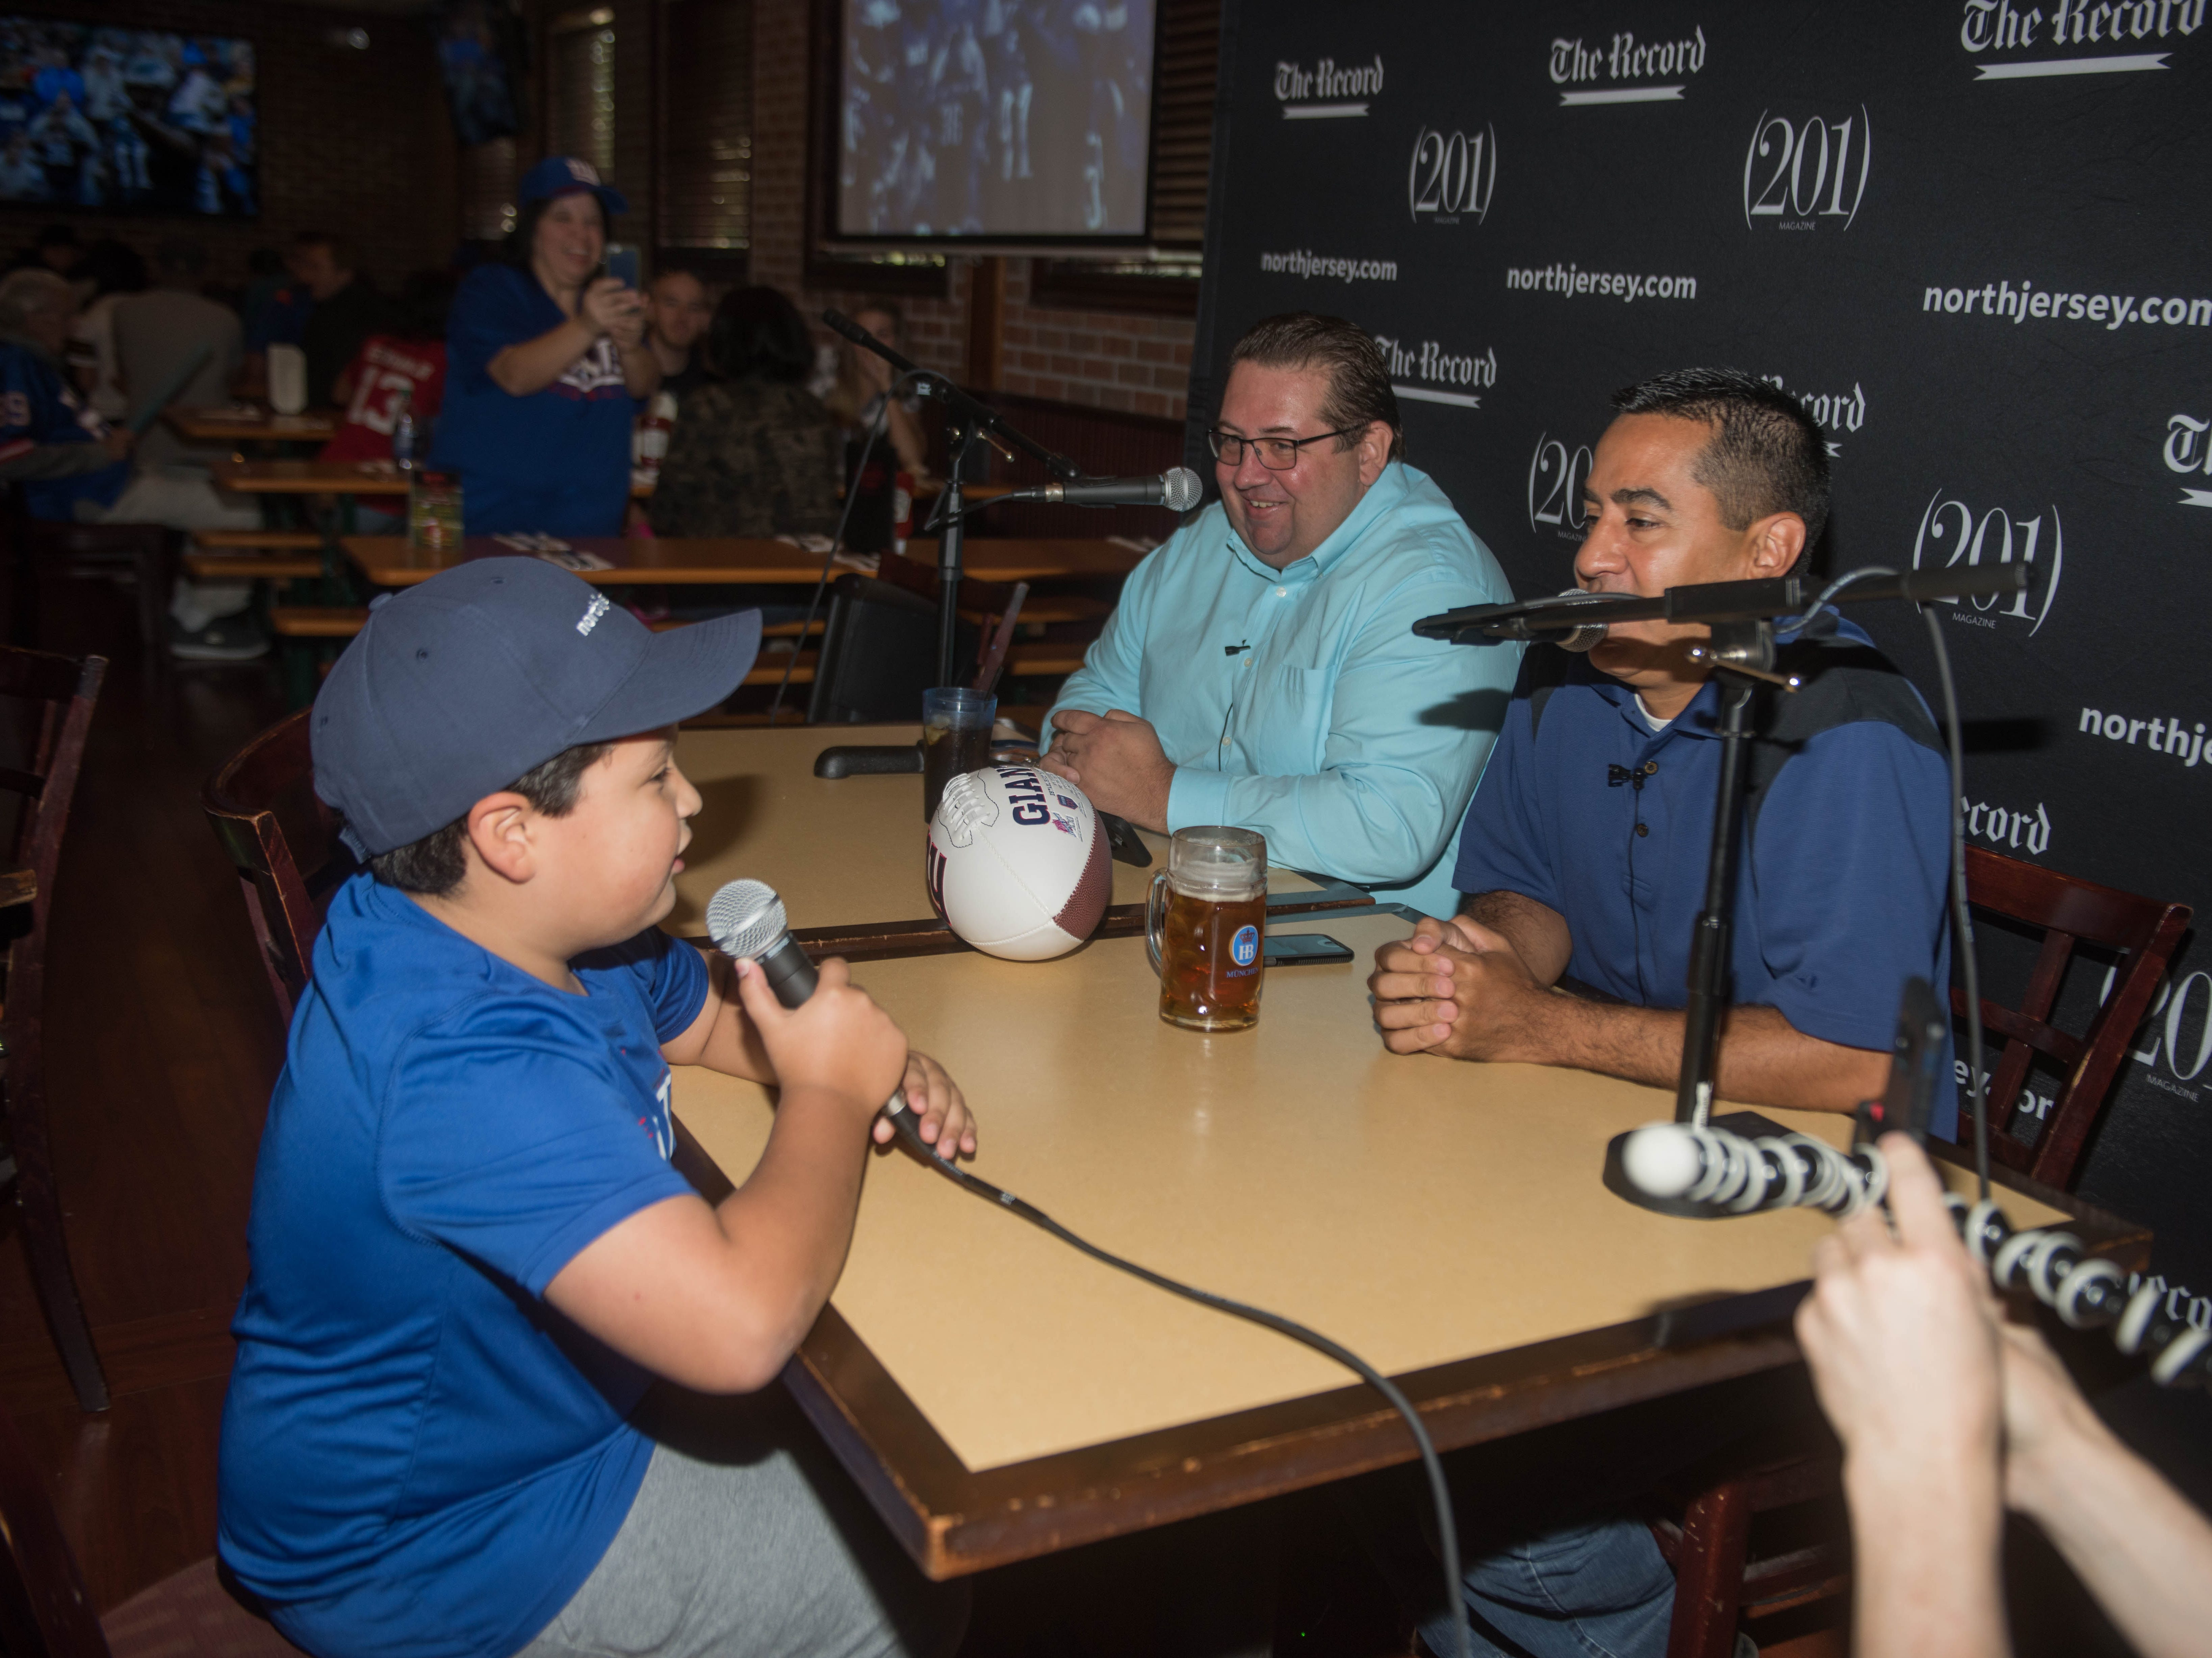 Art Stapleton and Dave Rivera talk Giants/Saints with Josh Juarez. at Redd's. The Record sports writers Art Stapleton and Dave Rivera joined fans at Redd's to talk Giants and Saints before the game. 09/30/2018